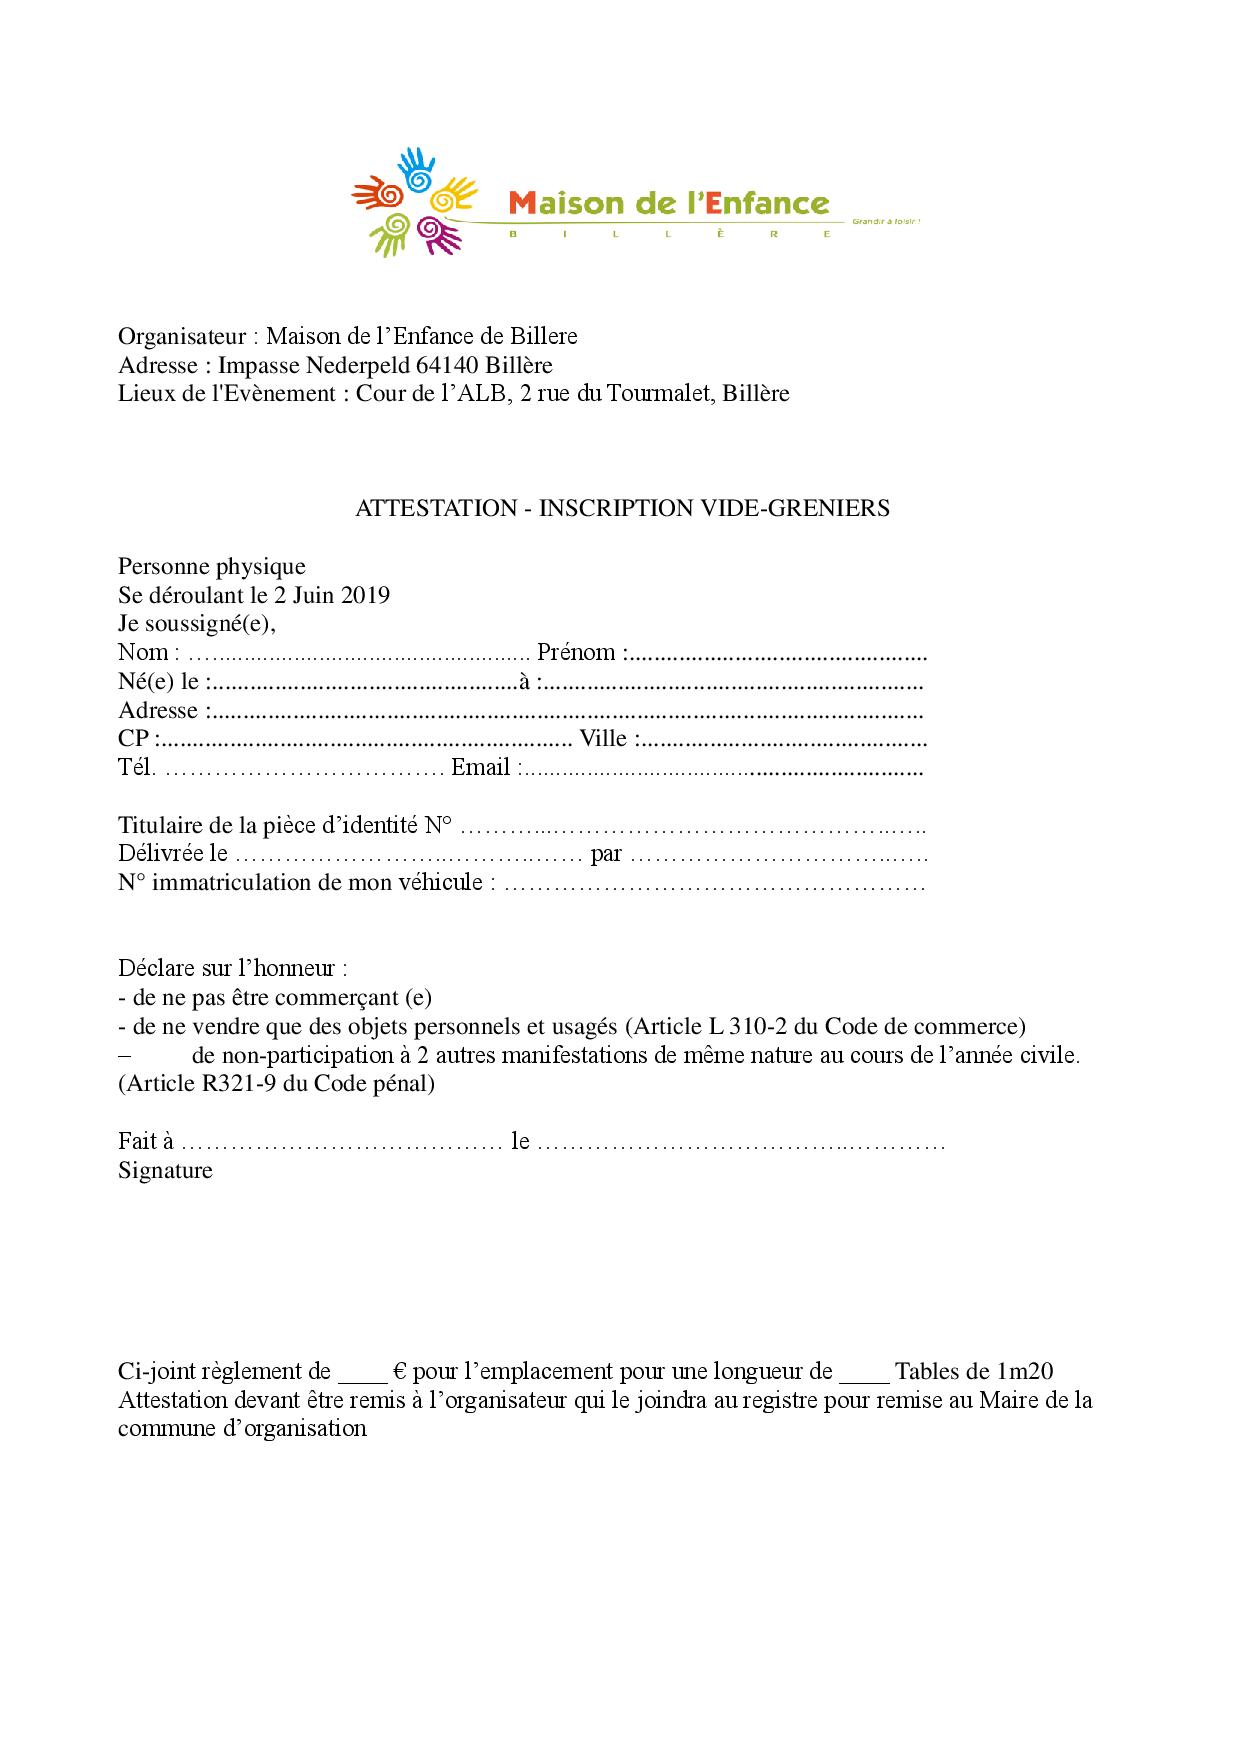 Reglement inscription VG 2019-page-003